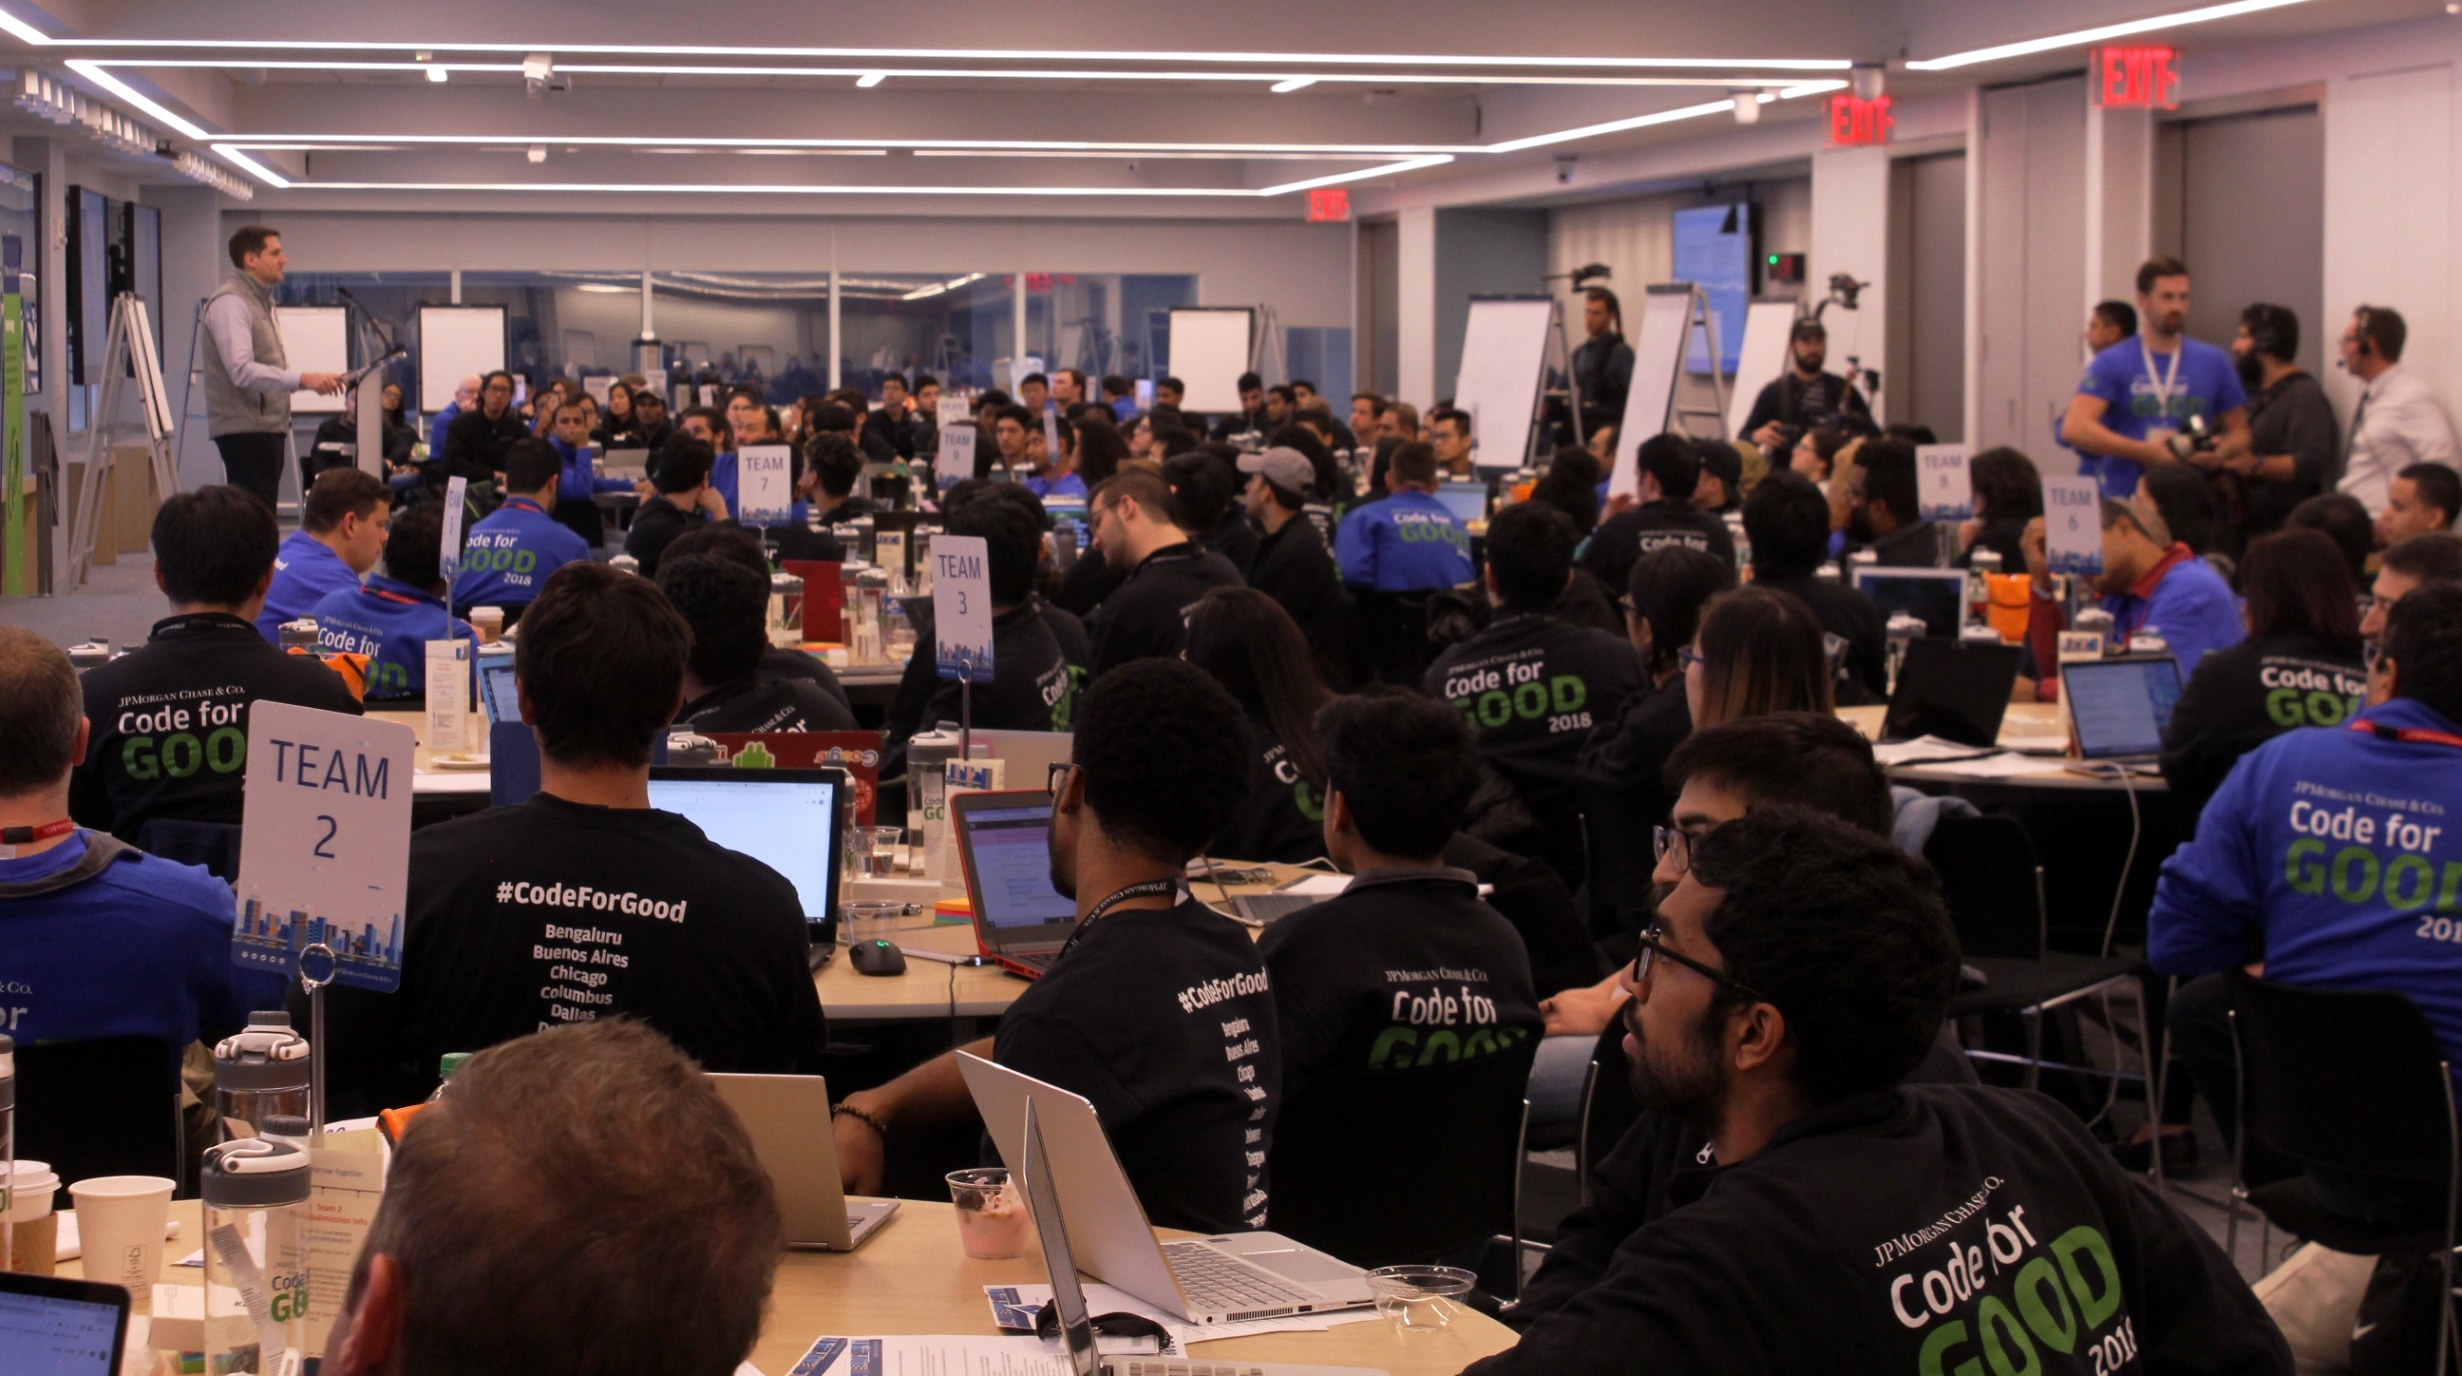 Student coders listen attentively during the Code for Good hackathon opening remarks.